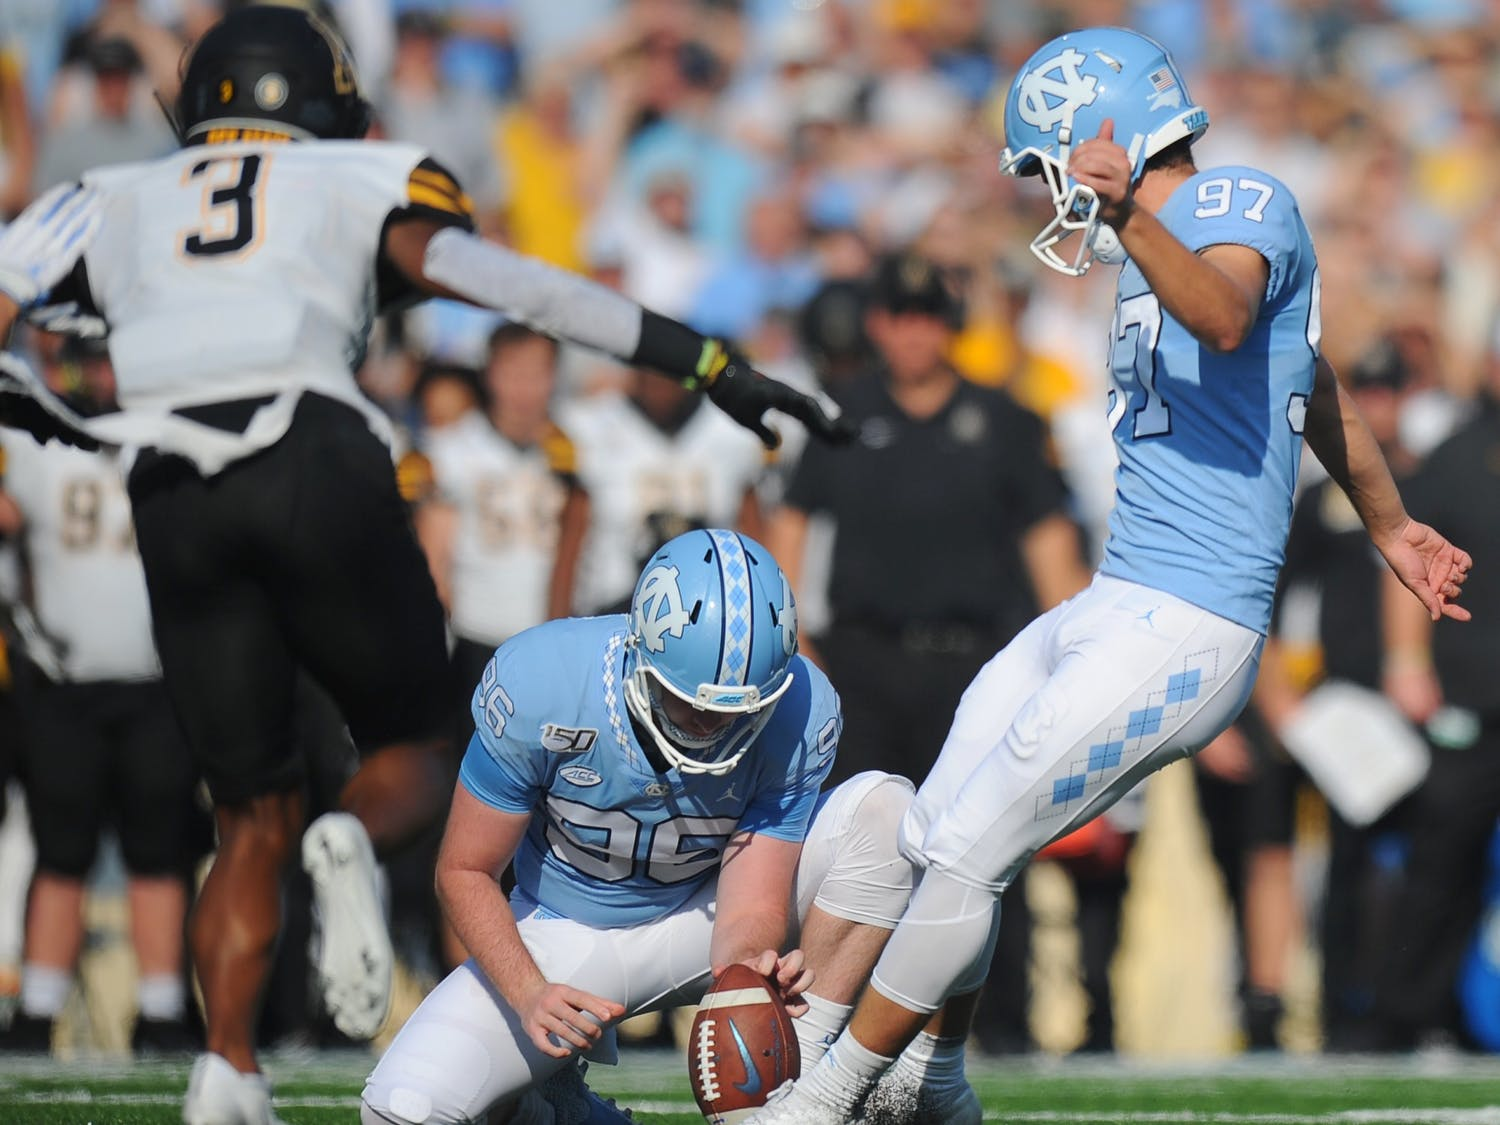 UNC kicker Noah Ruggles (97) attempts a field goal during a game against Miami University in Kenan Memorial Stadium on Saturday, Sept. 7, 2019. Photo courtesy of Dana Gentry.